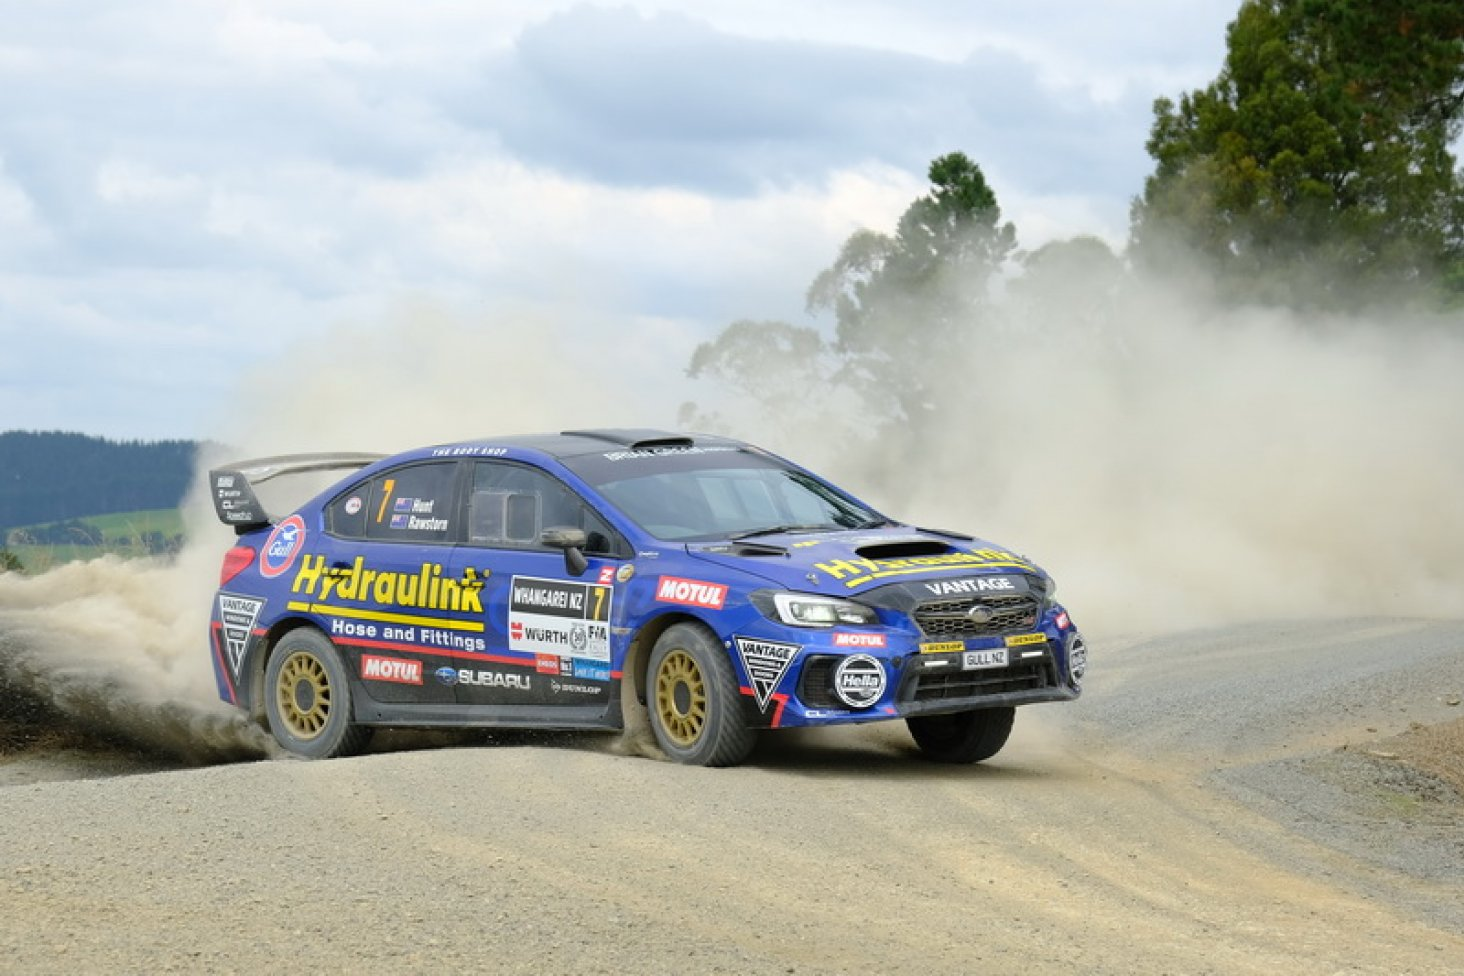 Subaru driver Ben Hunt and co-driver Tony Rawstorn collected their second consecutive runner-up result this season at the ENOS International Rally of Whangarei today. PHOTO: GEOFF RIDDER.